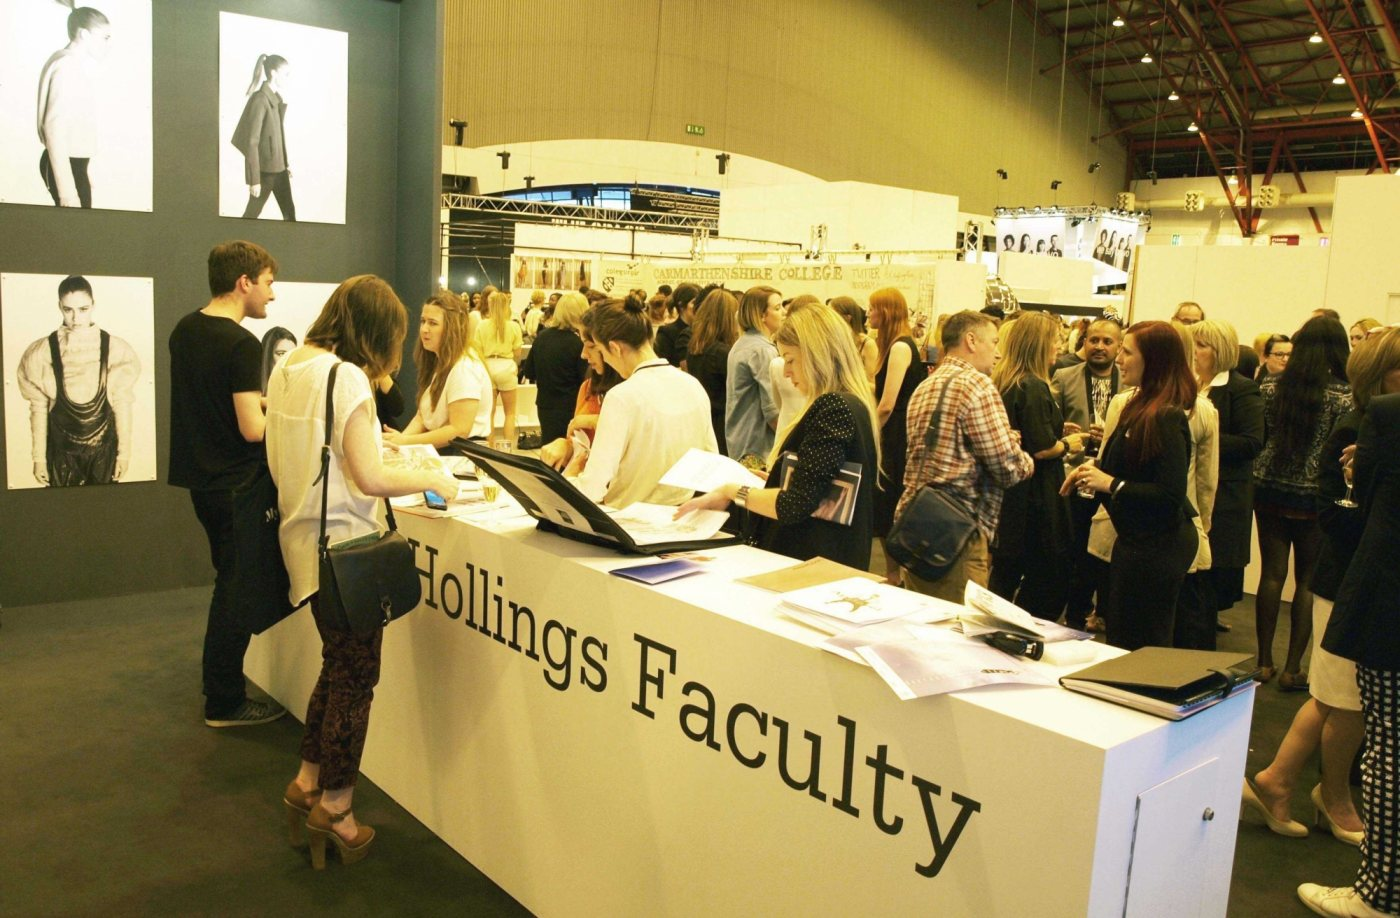 Sunny thinking hollings faculty stand design for gfw